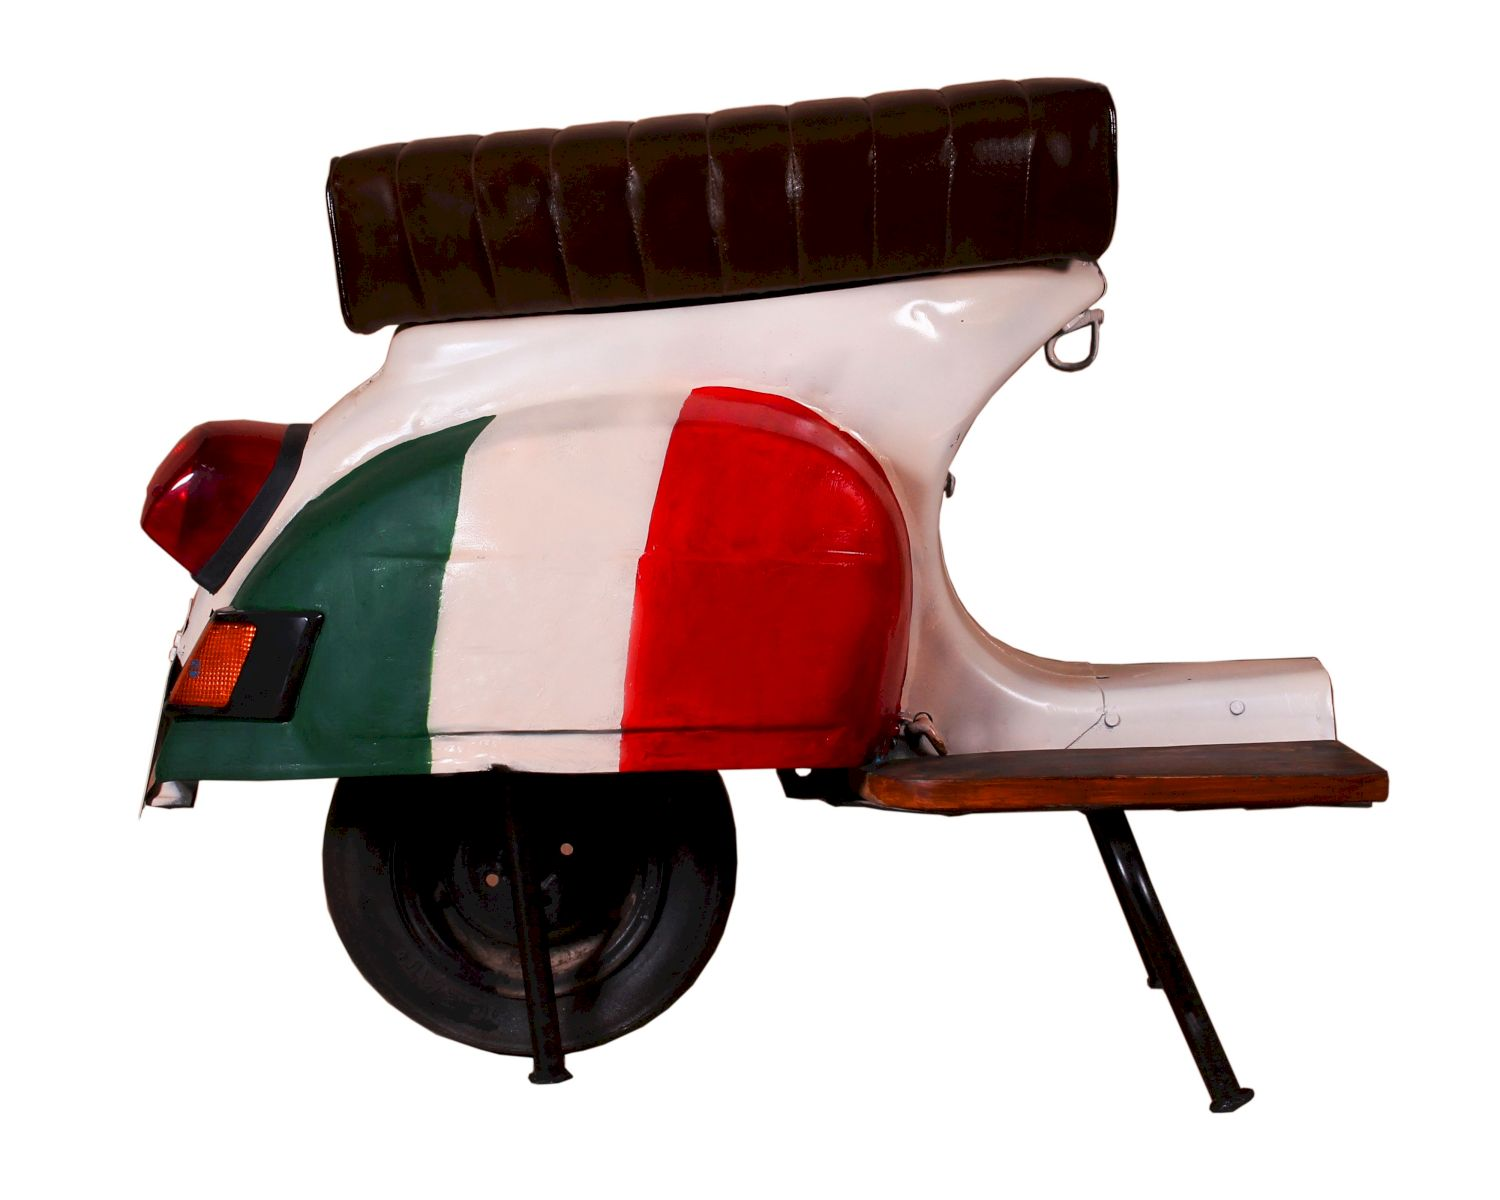 SIT This & That Roller-Barhocker italienische Flagge / 1054-39 / B 110 x H 88 x T 53 cm